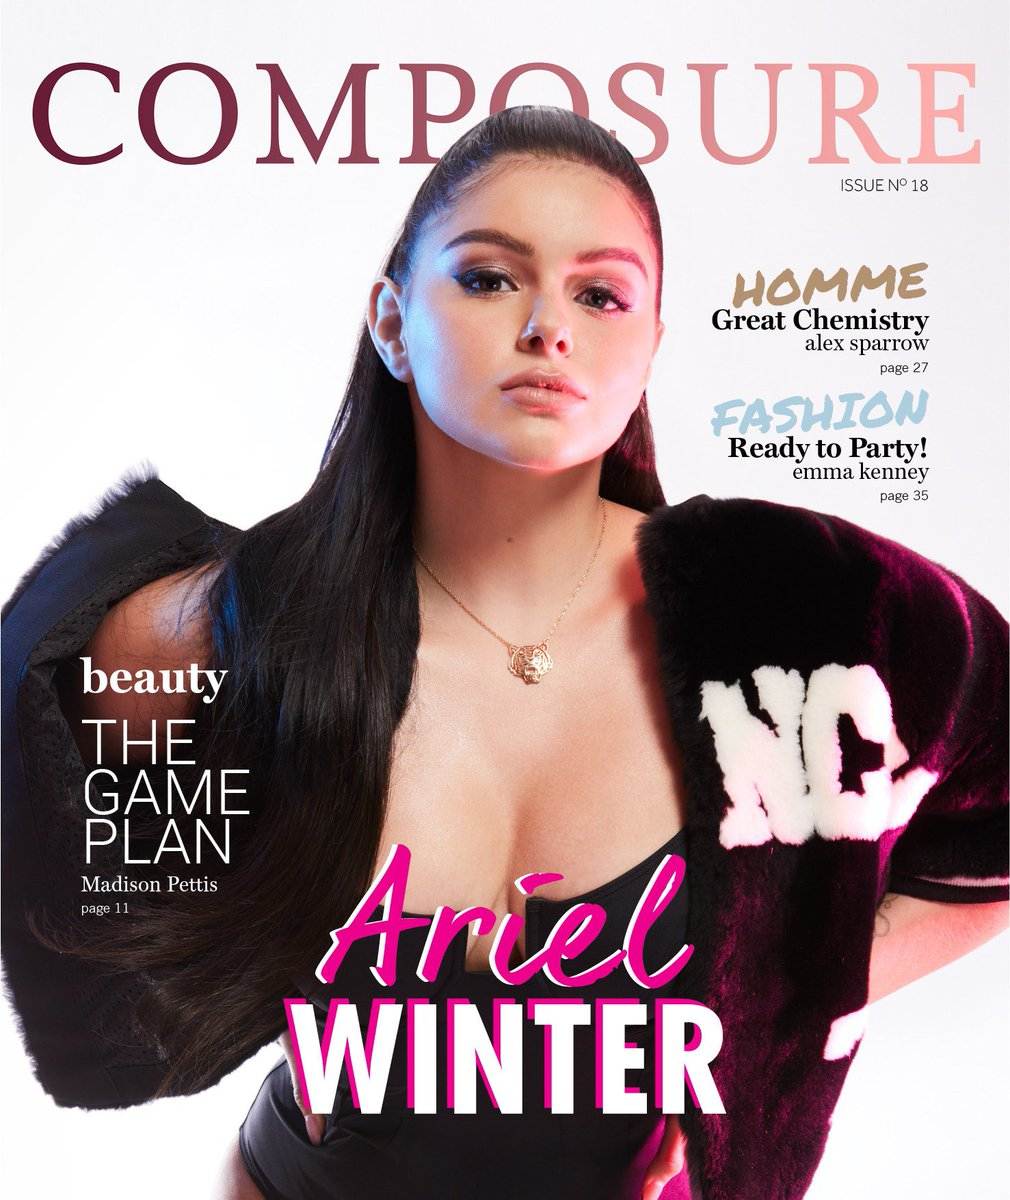 So grateful to be on the cover of @composuremag!!!! Link in bio for the article❤️???? https://t.co/9bkzSFh1Vu